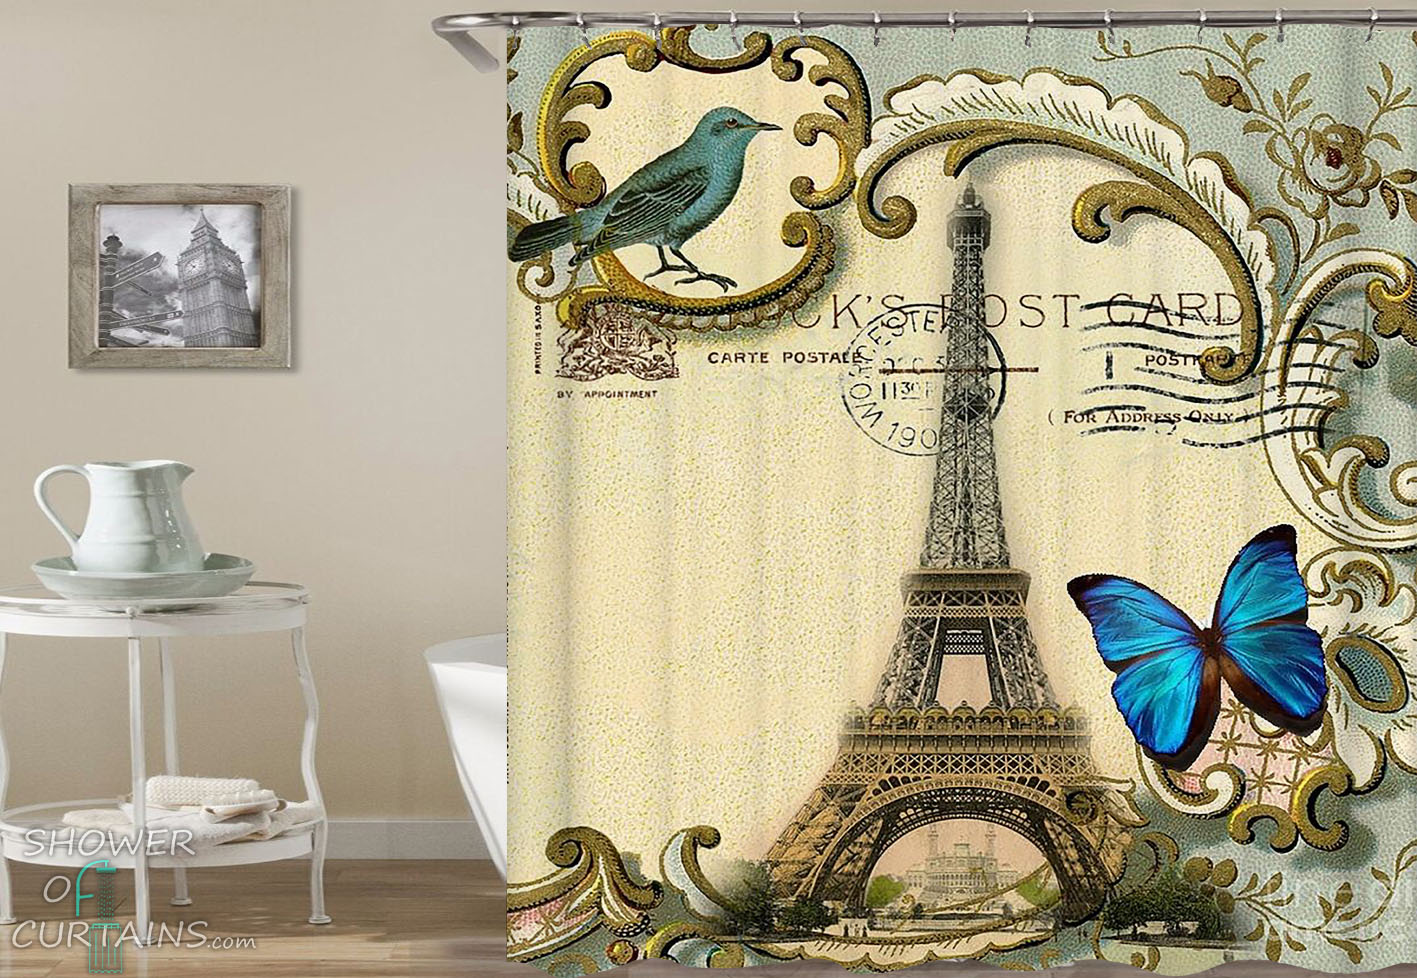 Eiffel Tower Postcard Shower Curtain Hxtc0811 Sold By Shower Of Curtains